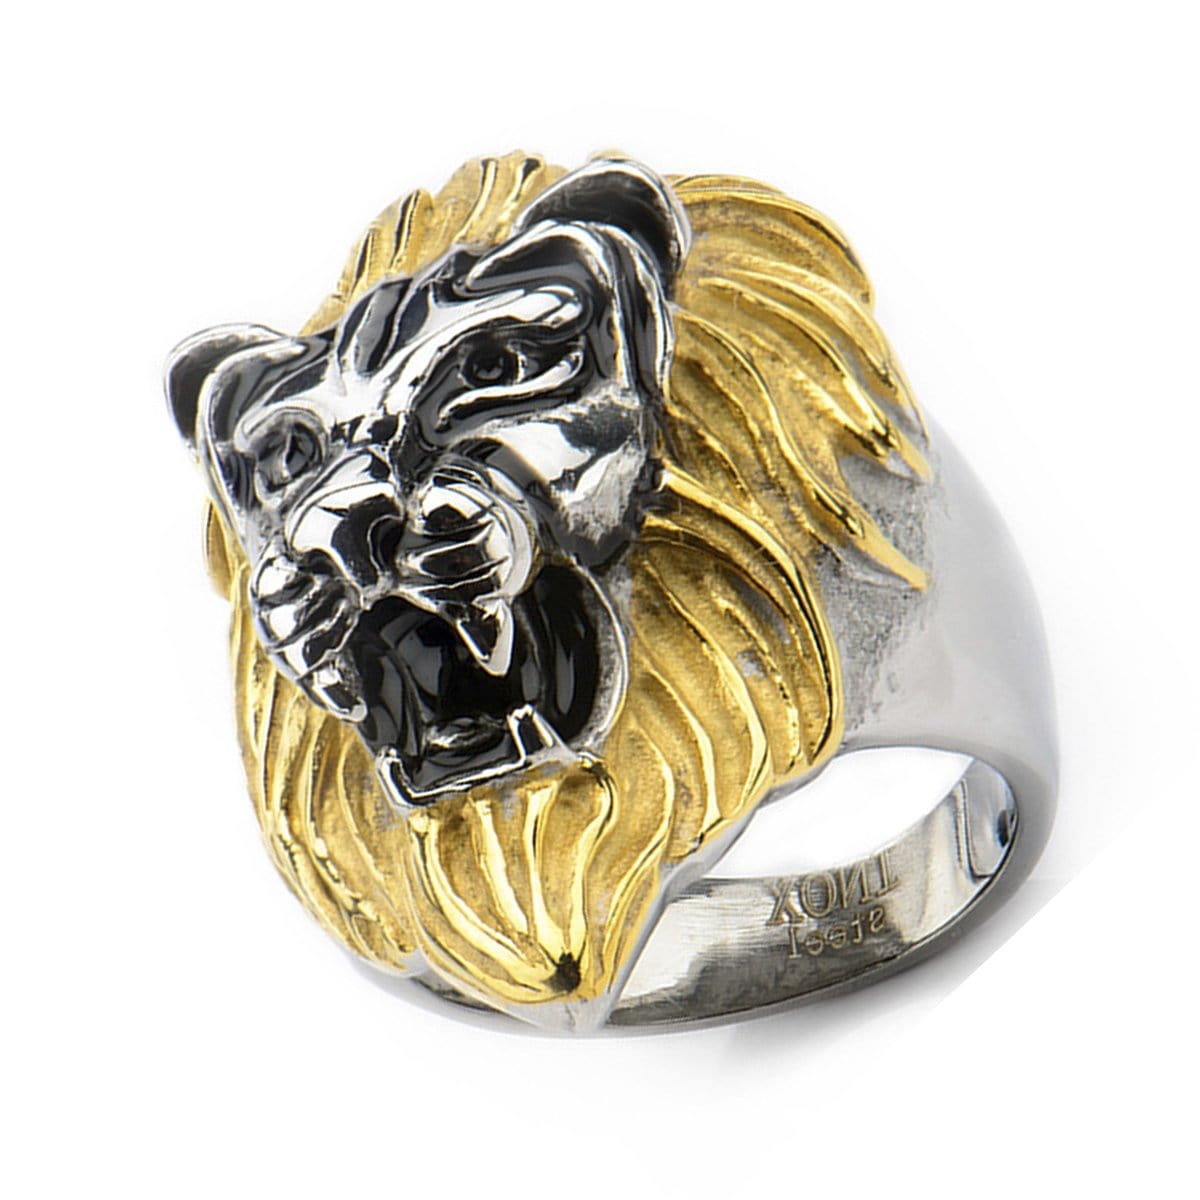 Gold & Darkened Silver Stainless Steel Lion's Head Ring - Inox Jewelry India